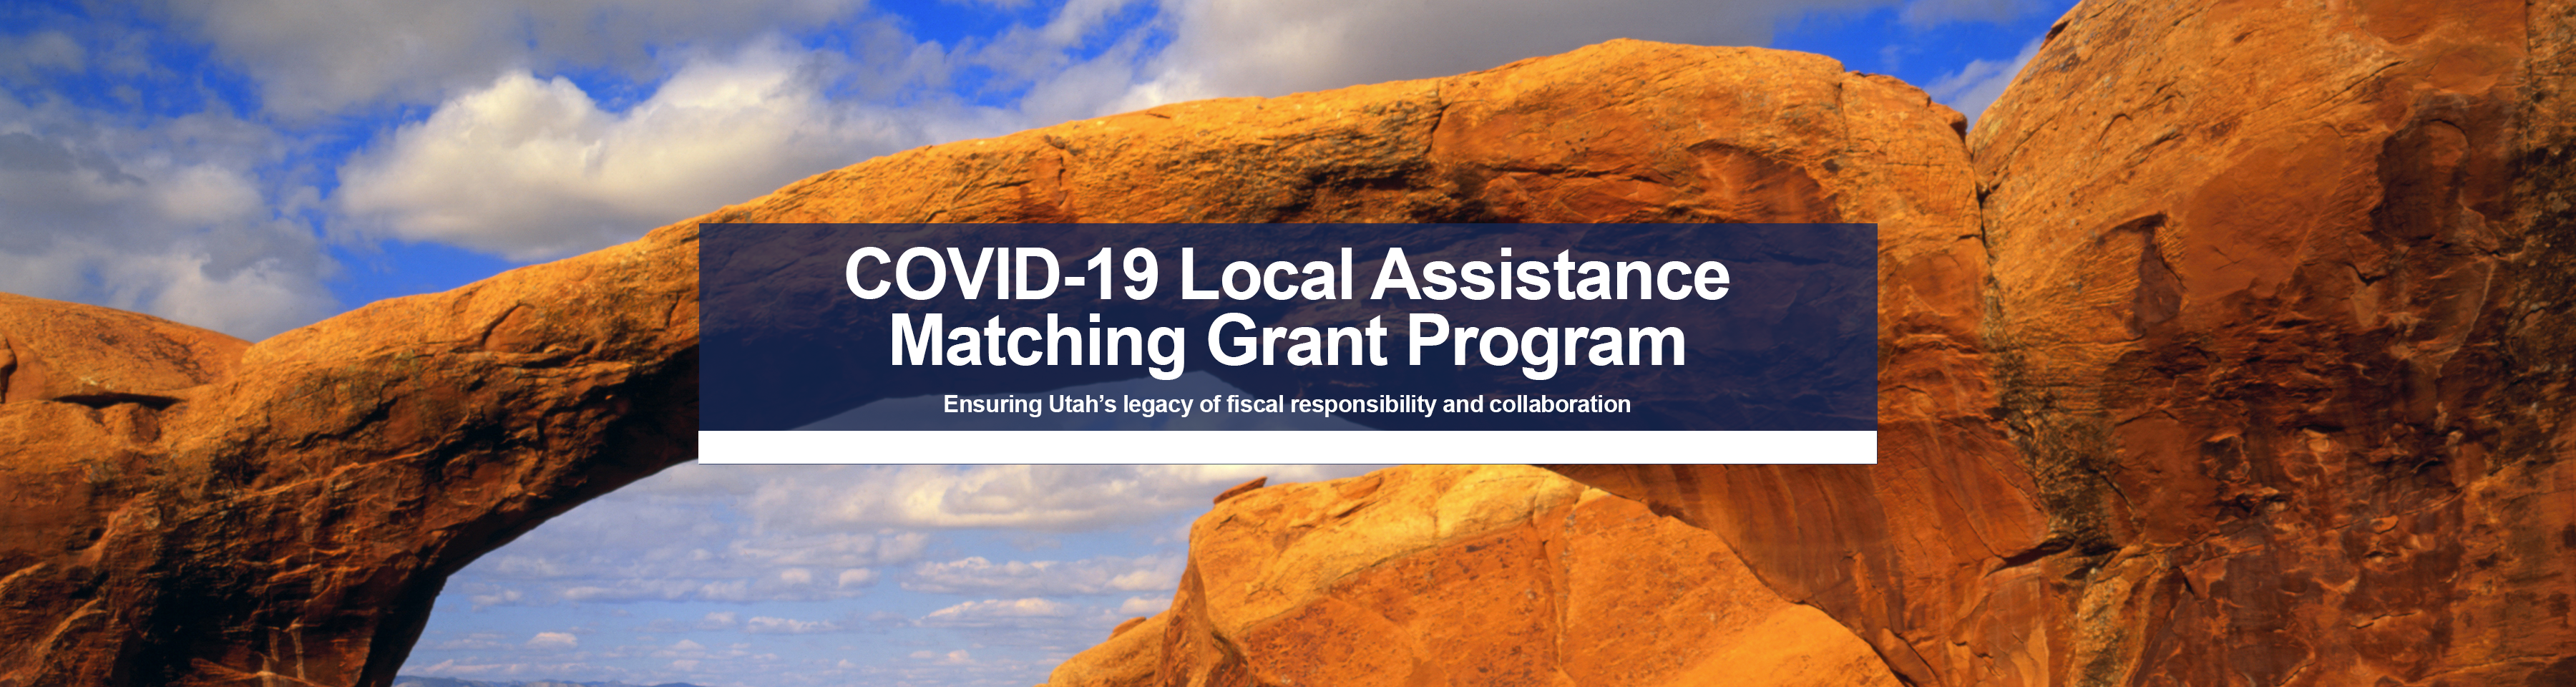 COVID-19 Local Assistance Matching Grant Program - Ensuring Utah's legacy of fiscal responsibility and collaboration